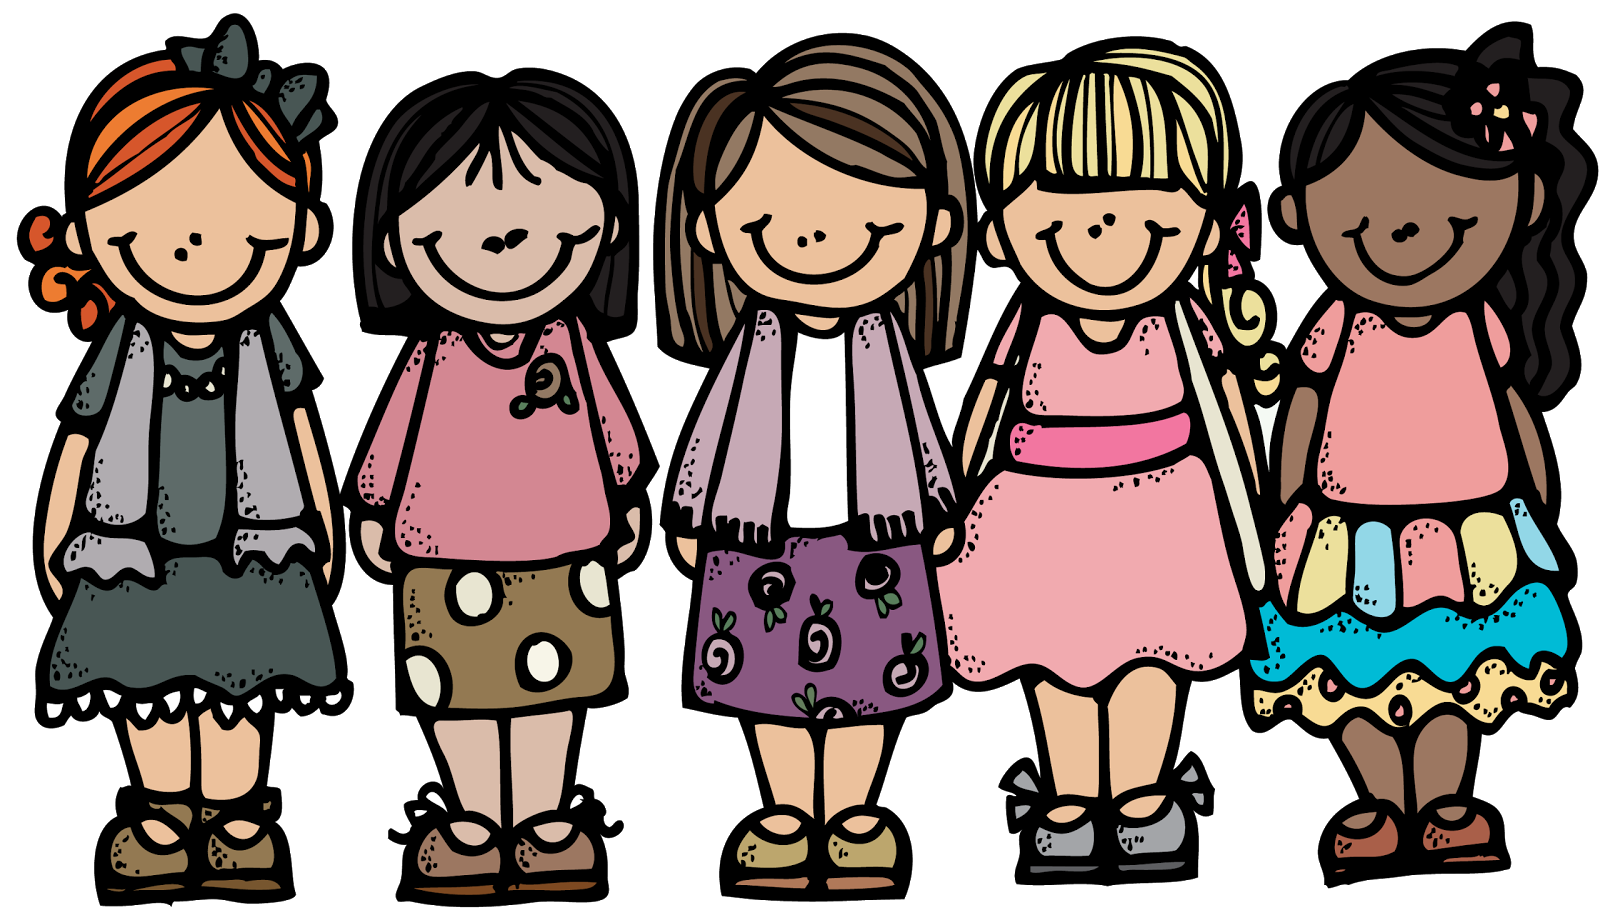 Book of mormon people clipart image library download activity+days+girls+melonheadz+colored.png (1600×910) | Silhouette ... image library download